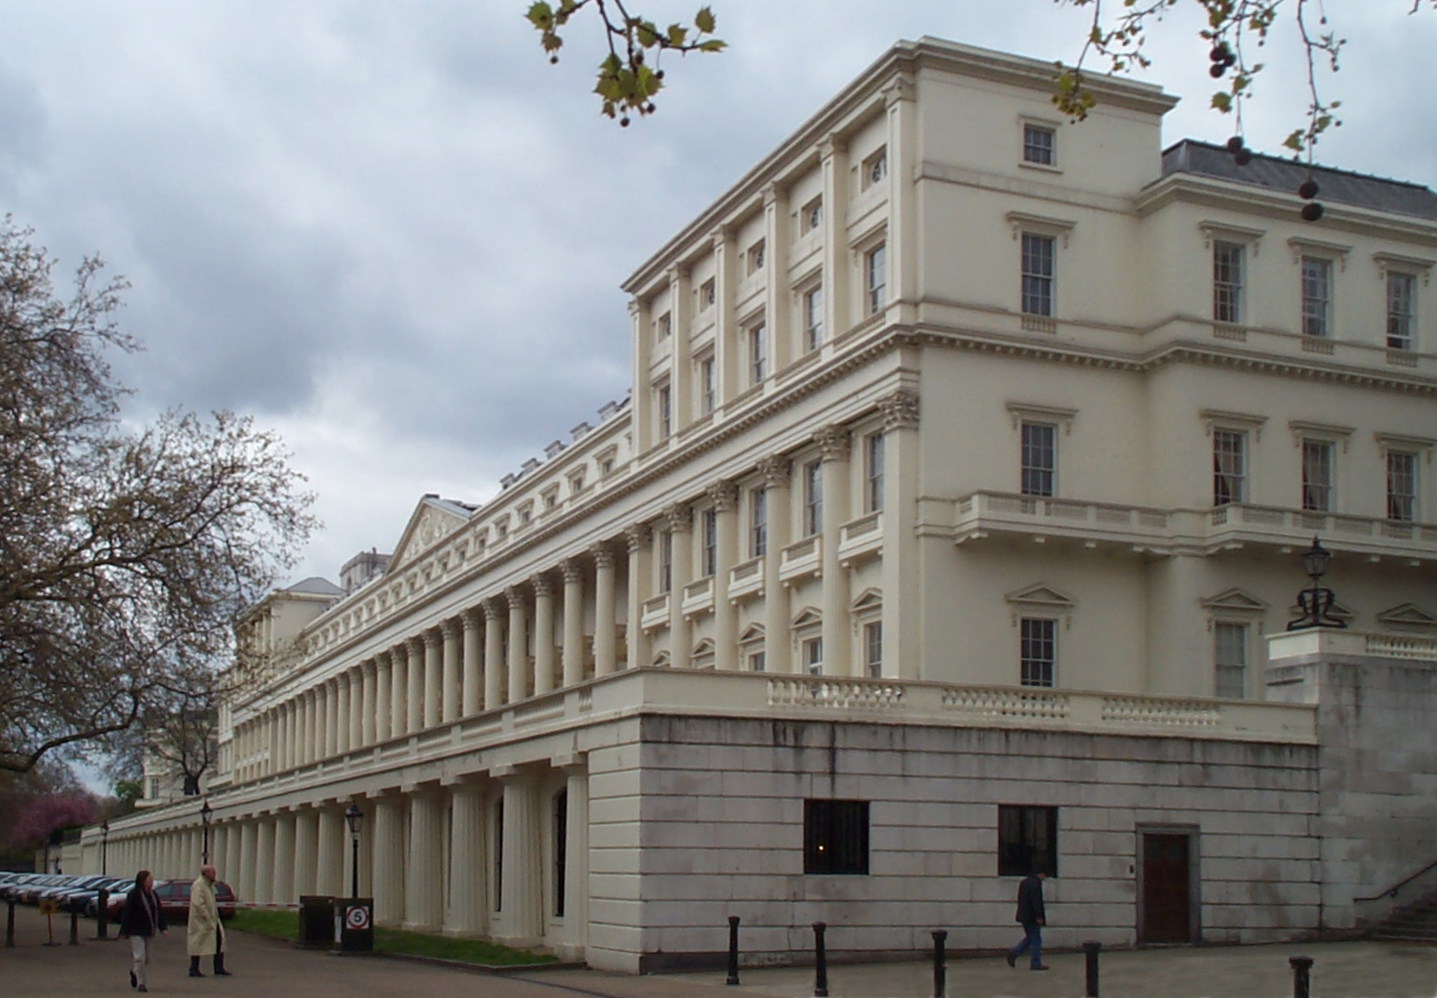 Royal society wikiwand for 18 carlton house terrace